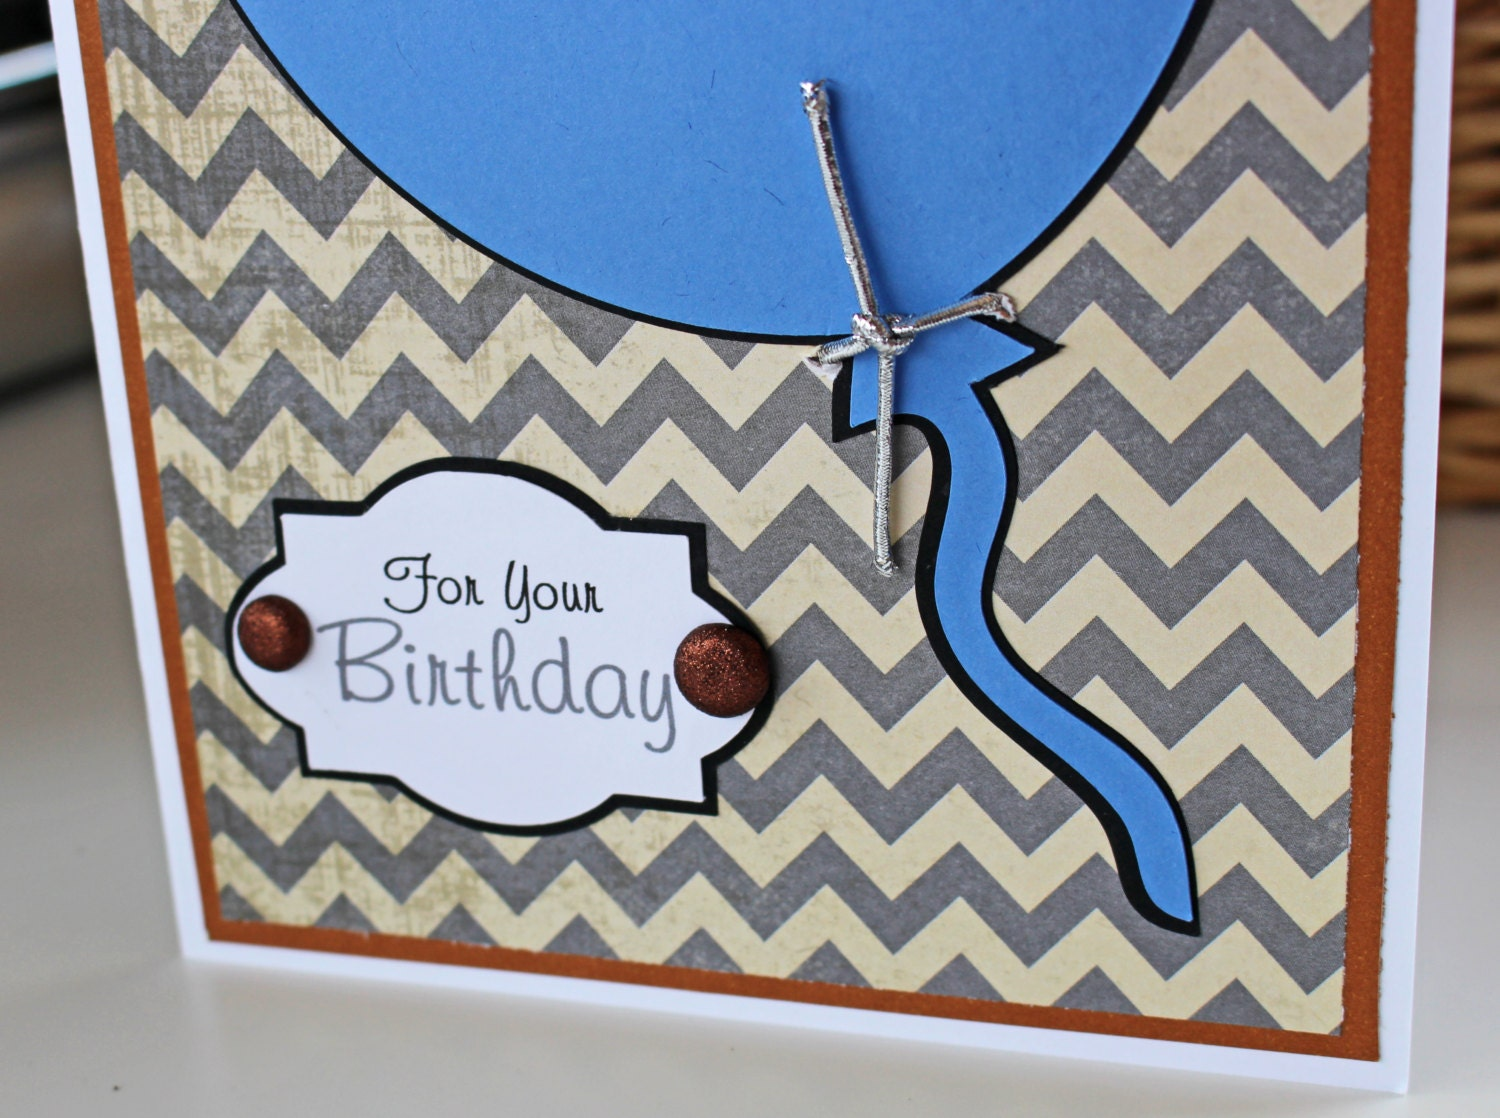 Balloon birthday card for him personalized birthday card blue balloon birthday card for him personalized birthday card blue balloon card chevron mens birthday card male birthday card teen boy card bookmarktalkfo Choice Image